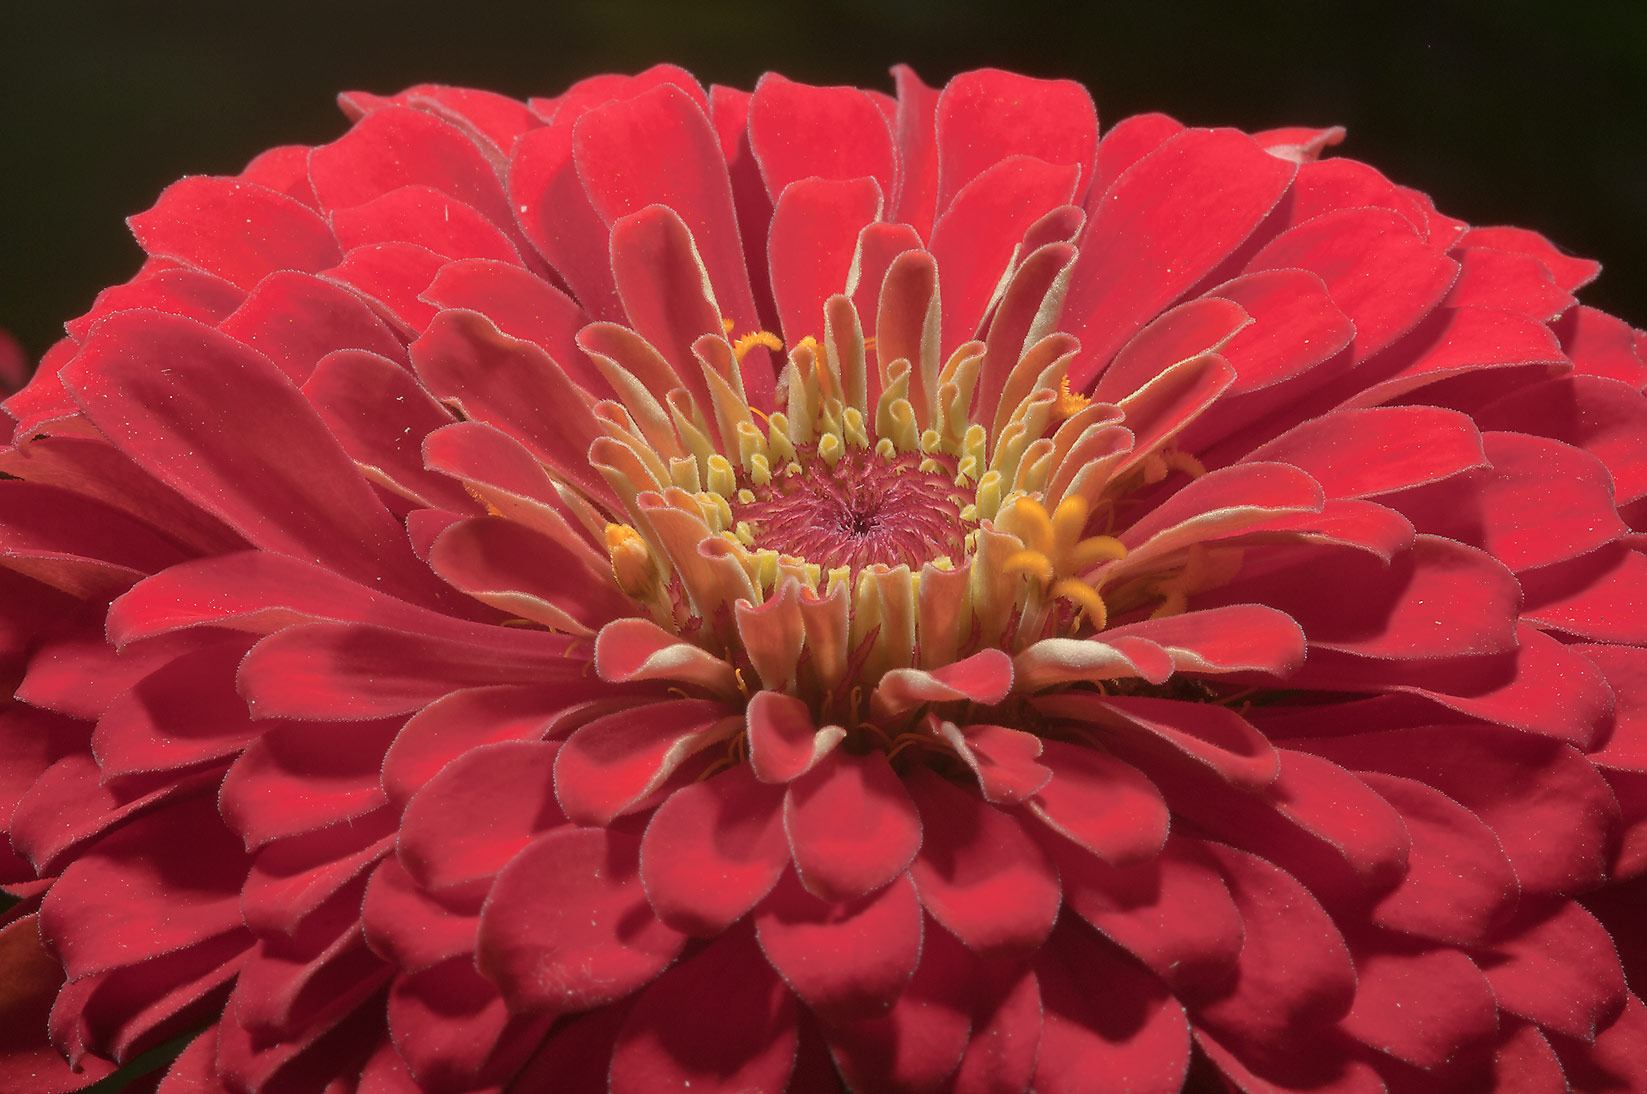 Red zinnia flower in Antique Rose Emporium. Independence, Texas